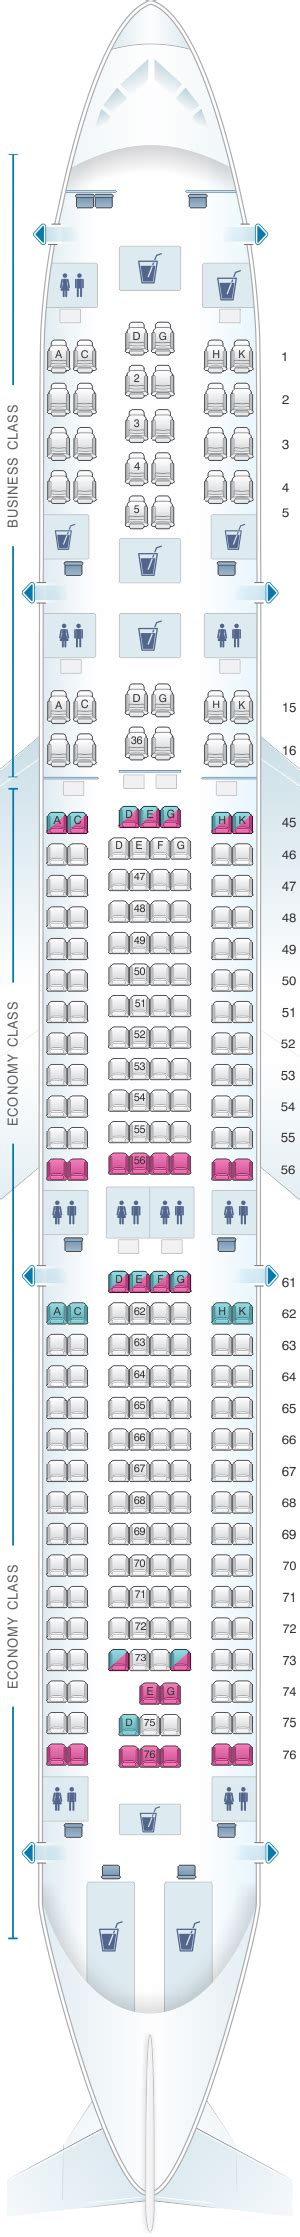 Seat Map South African Airways Airbus A340 300 V1